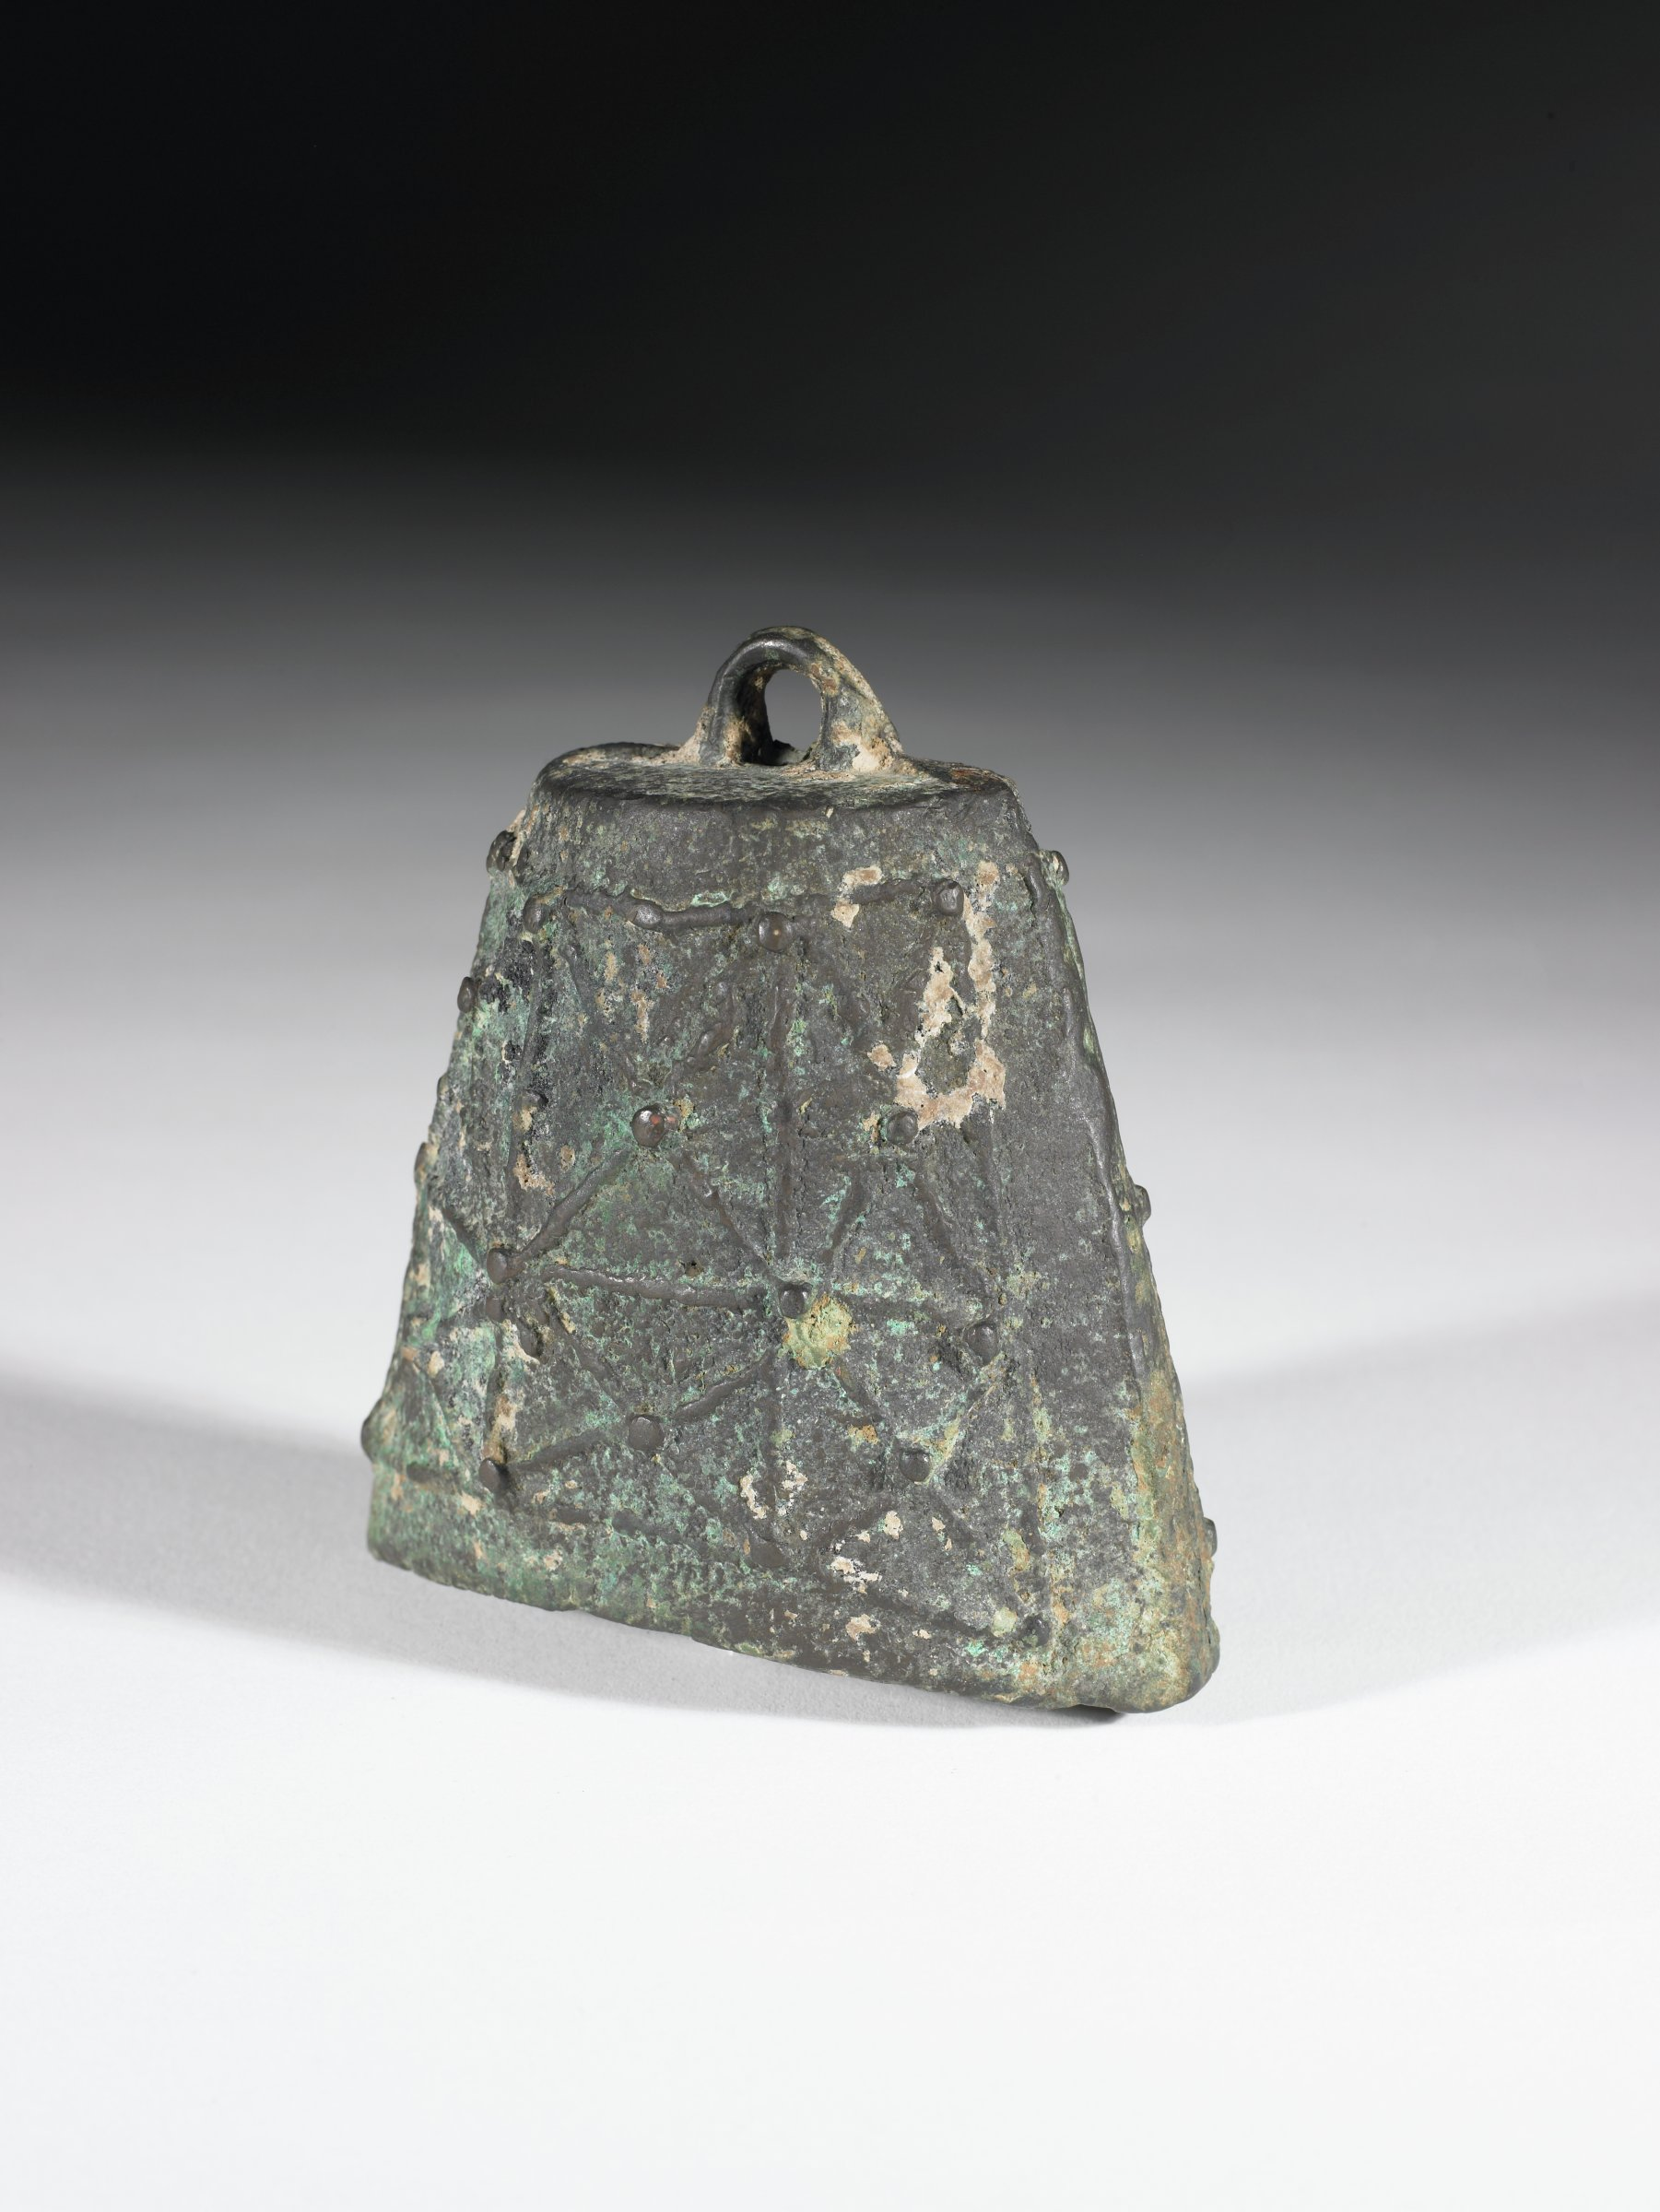 """Flattened trapezoidal bell with netting like surface motif composed or raised rectangles filled with """"x"""" that have a small boss at the intersecting lines. Hole at top for loop for clapper. dented on one side."""